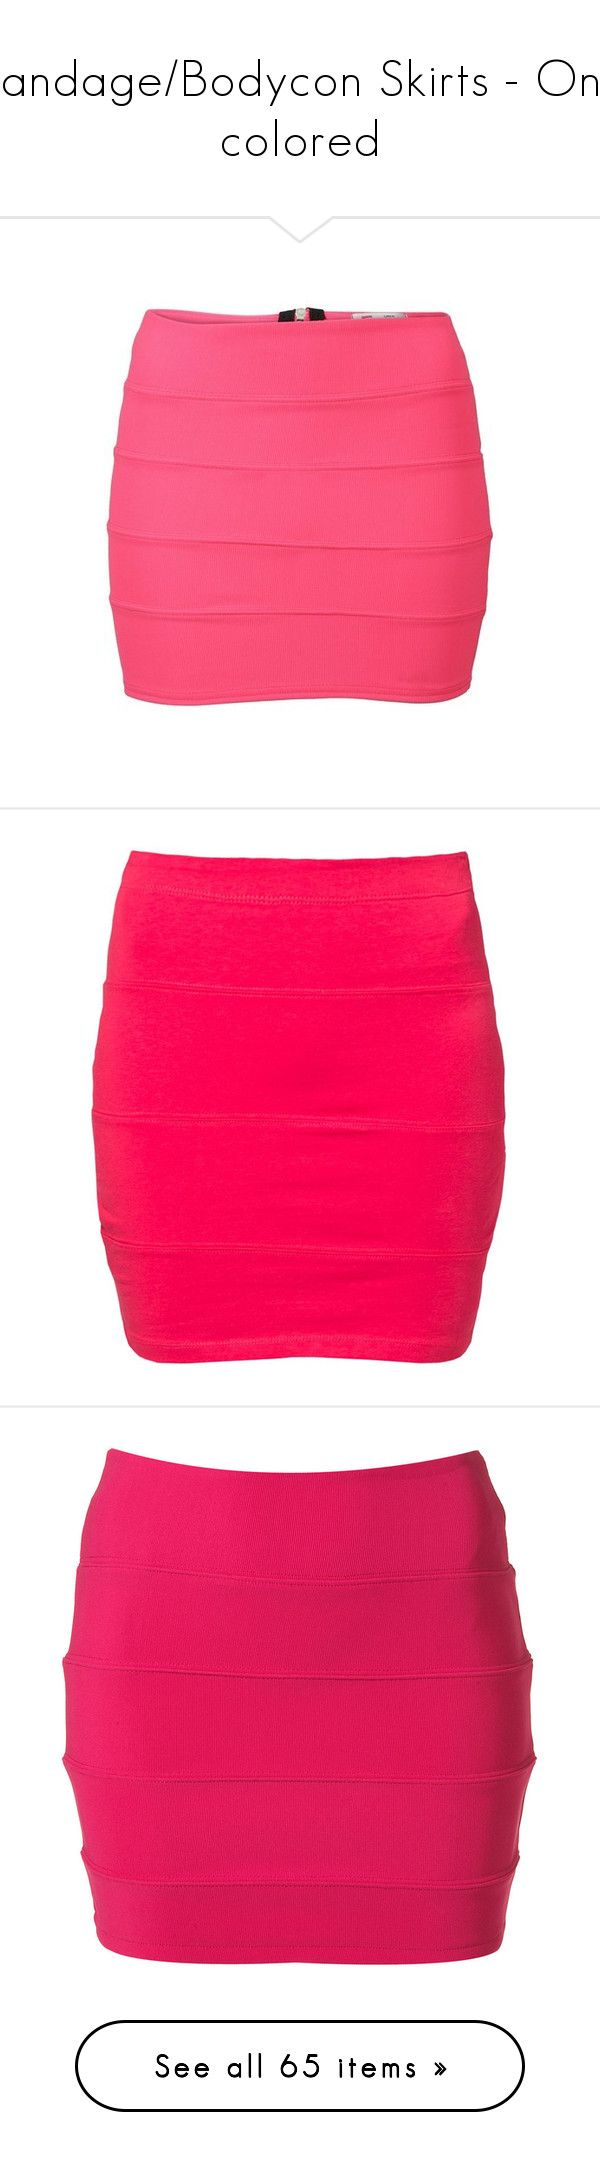 """Bandage/Bodycon Skirts - One colored"" by lulucosby ❤ liked on Polyvore featuring skirts, mini skirts, pink skirt, bodycon mini skirt, body con mini skirt, ribbed skirt, neon pink mini skirt, bottoms, saias and faldas"